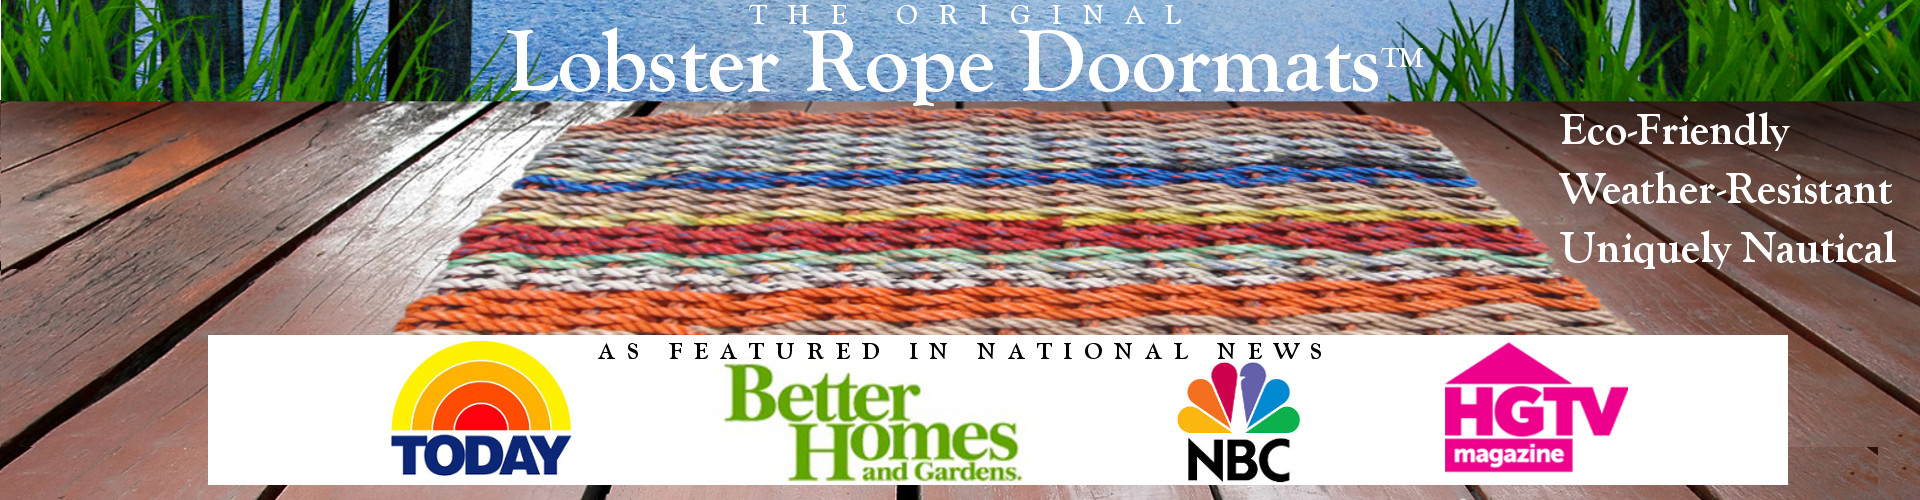 Lobster Rope Doormats